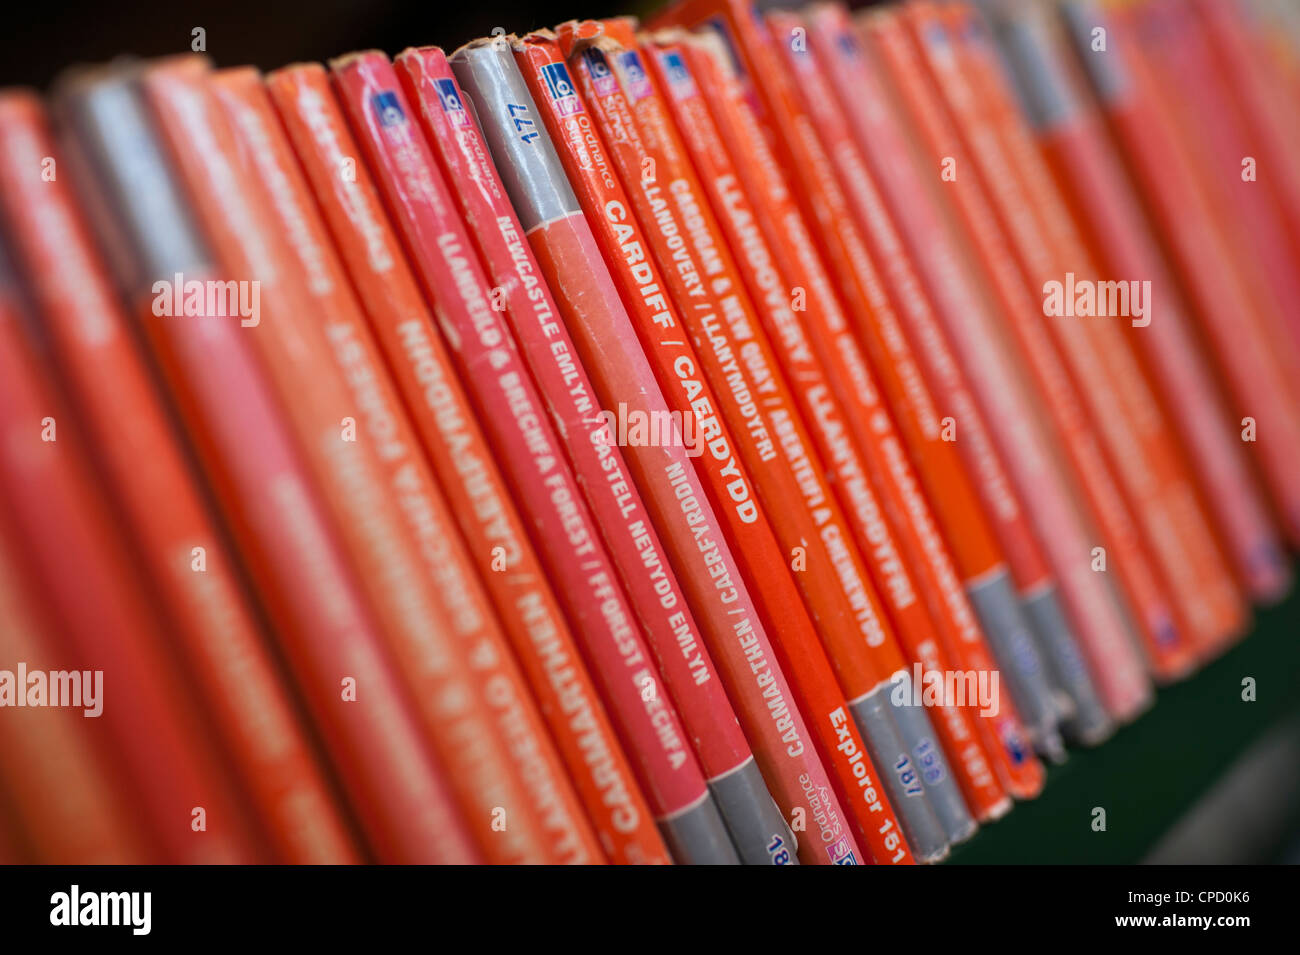 Orange spines of british Ordnance Survey Explorer series maps in the reference section of a public library, UK - Stock Image